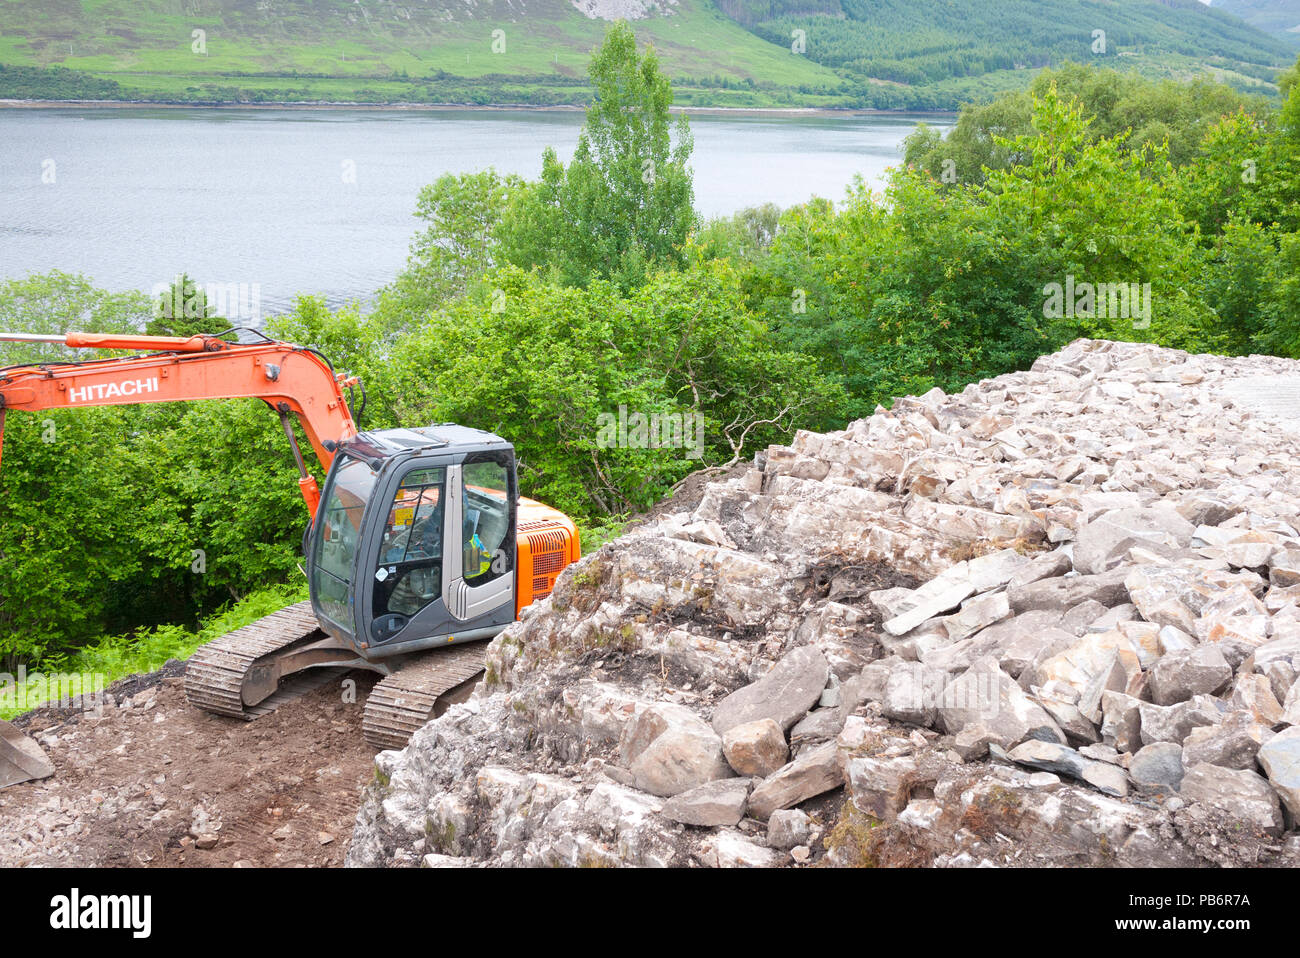 JCB excavating a plot for housing high up over Loch Broom,Wester-Ross,Highland, Scotland,UK. - Stock Image